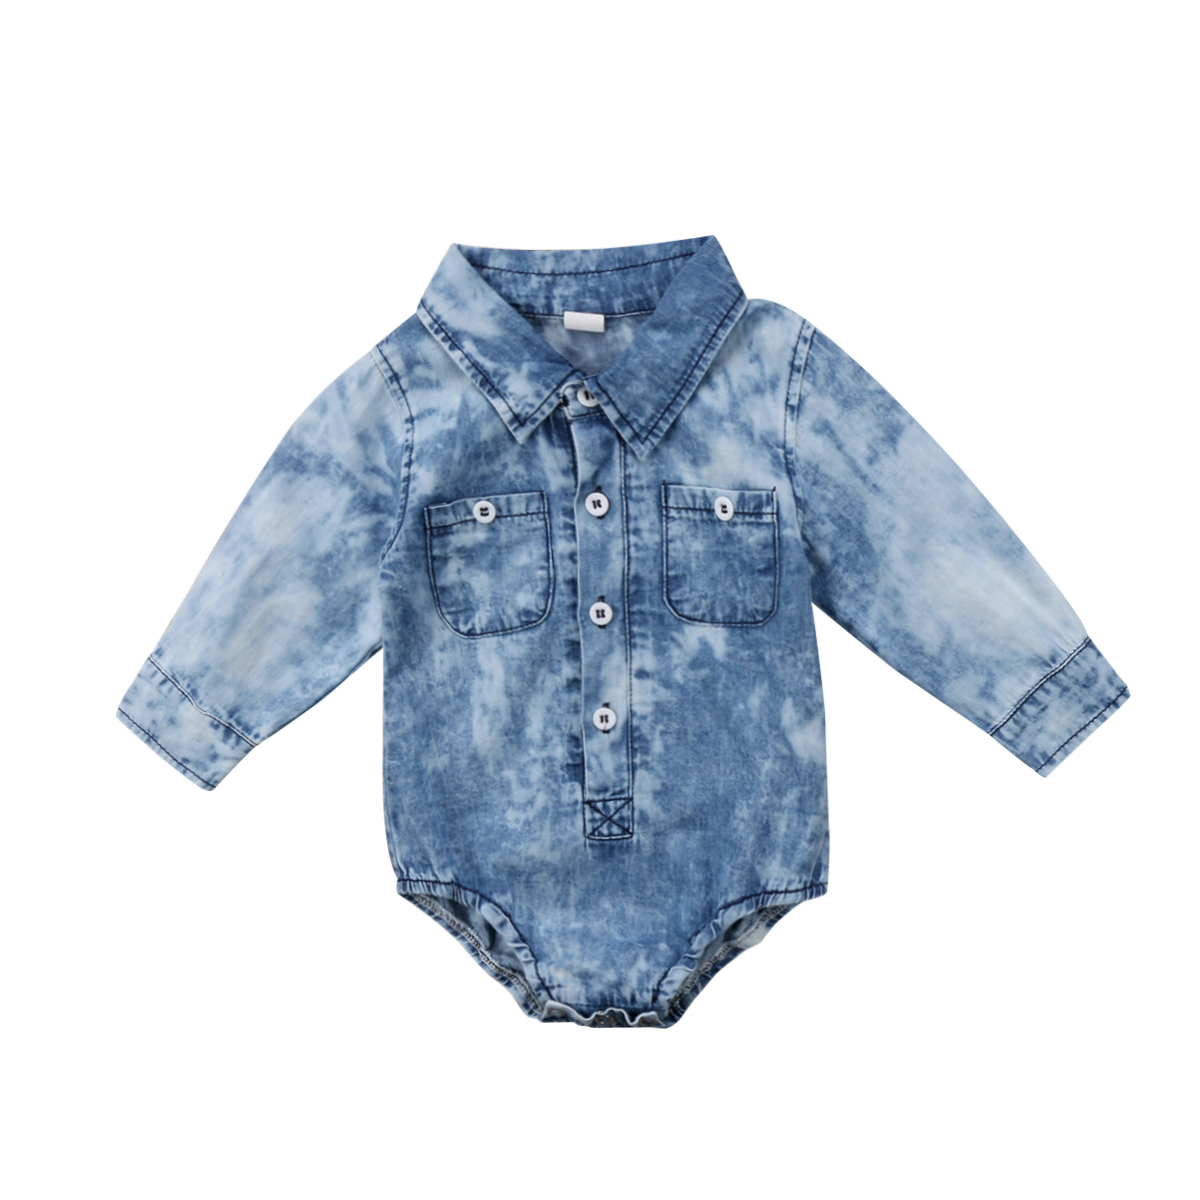 Toddler Infant Kids Baby Boy Girl Long Sleeve Denim   Romper   Jumpsuit Clothes Outfits